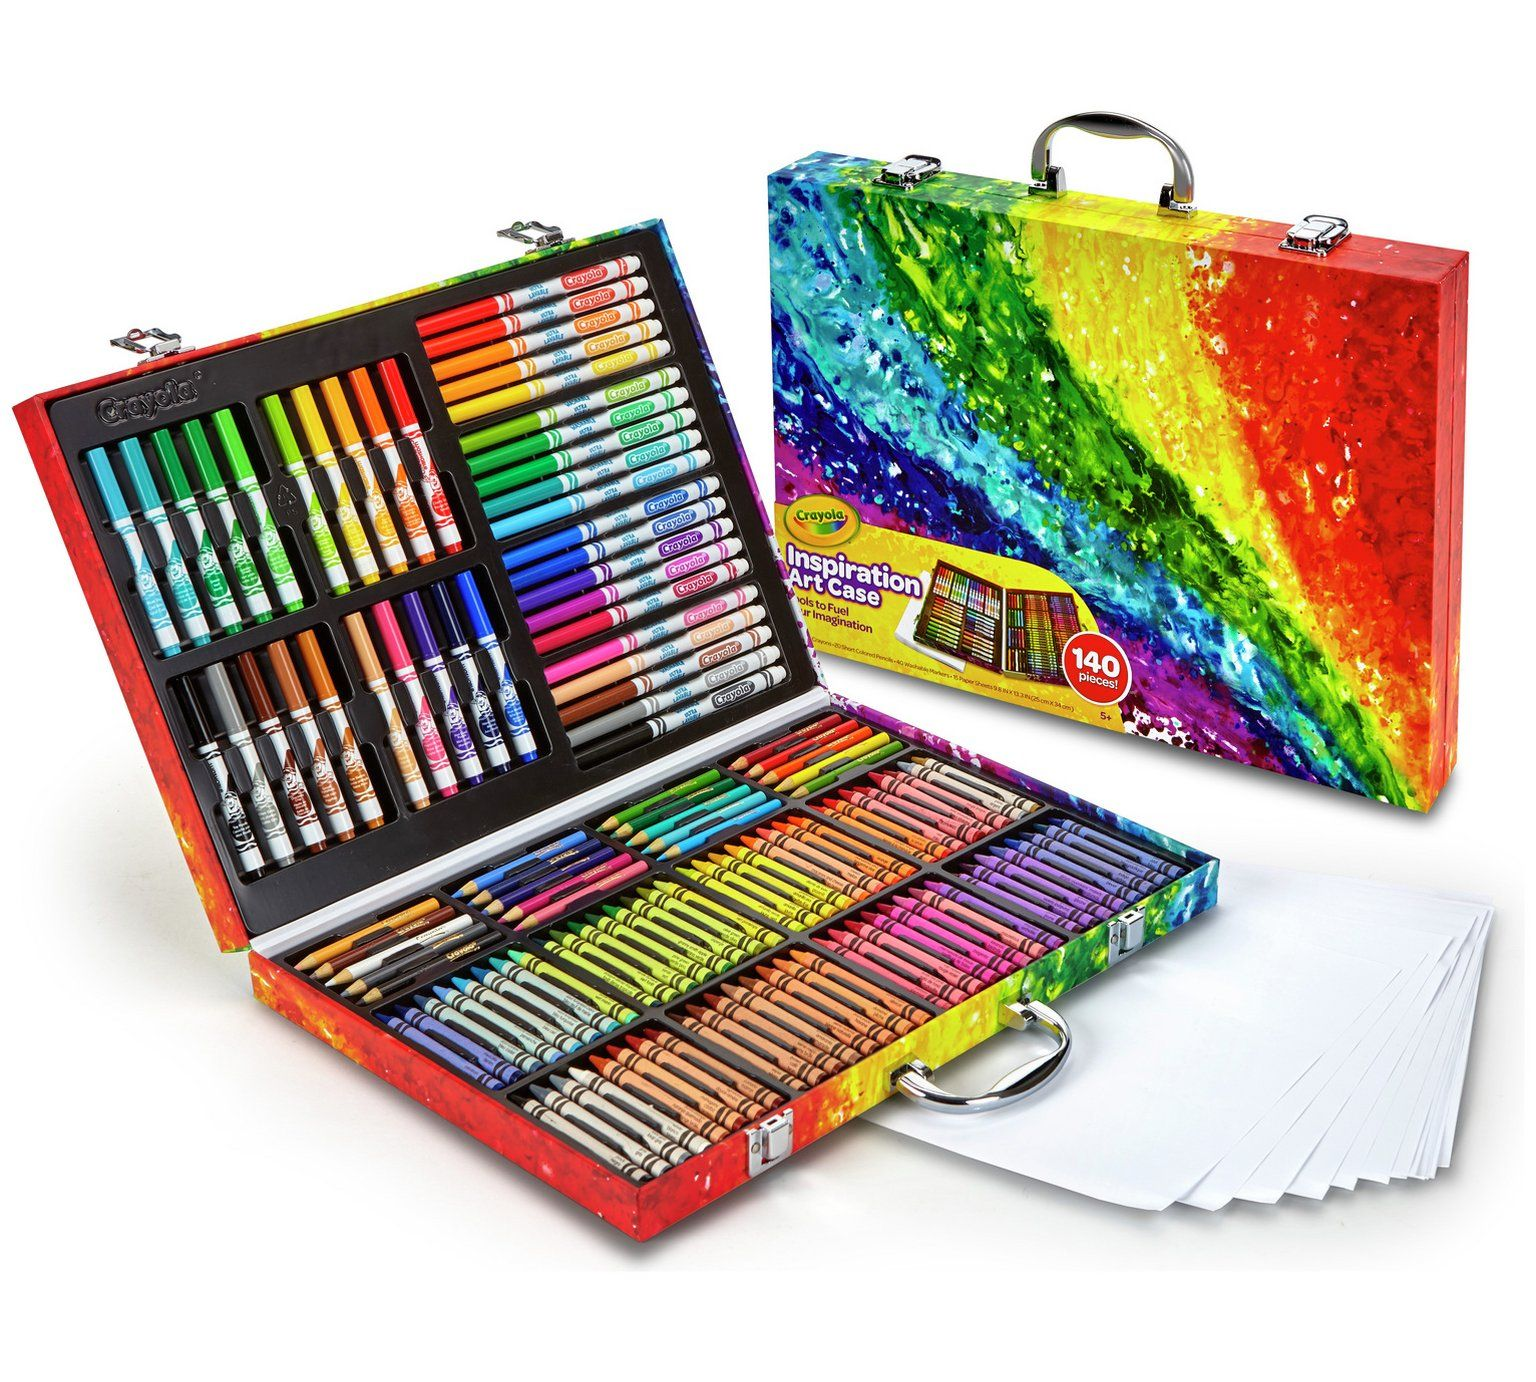 Buy Crayola Inspirational Art Case 2 For 30 Pounds On Toys